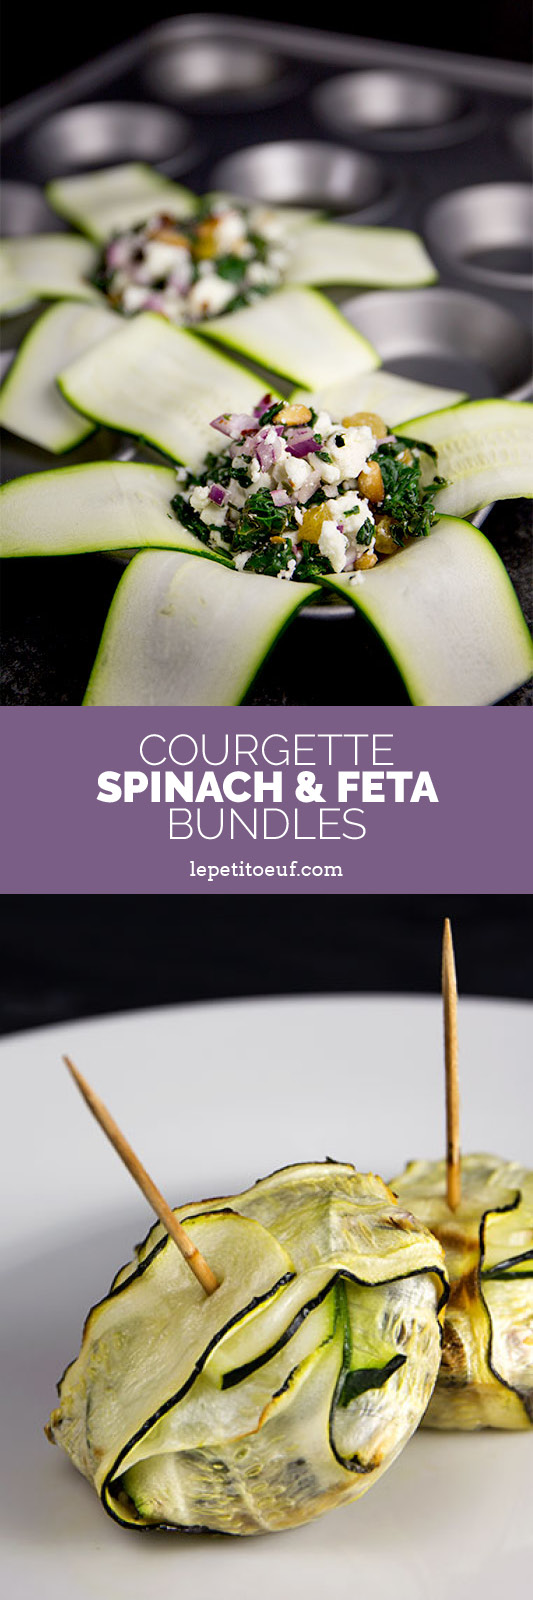 Courgette, spinach and feta bundles